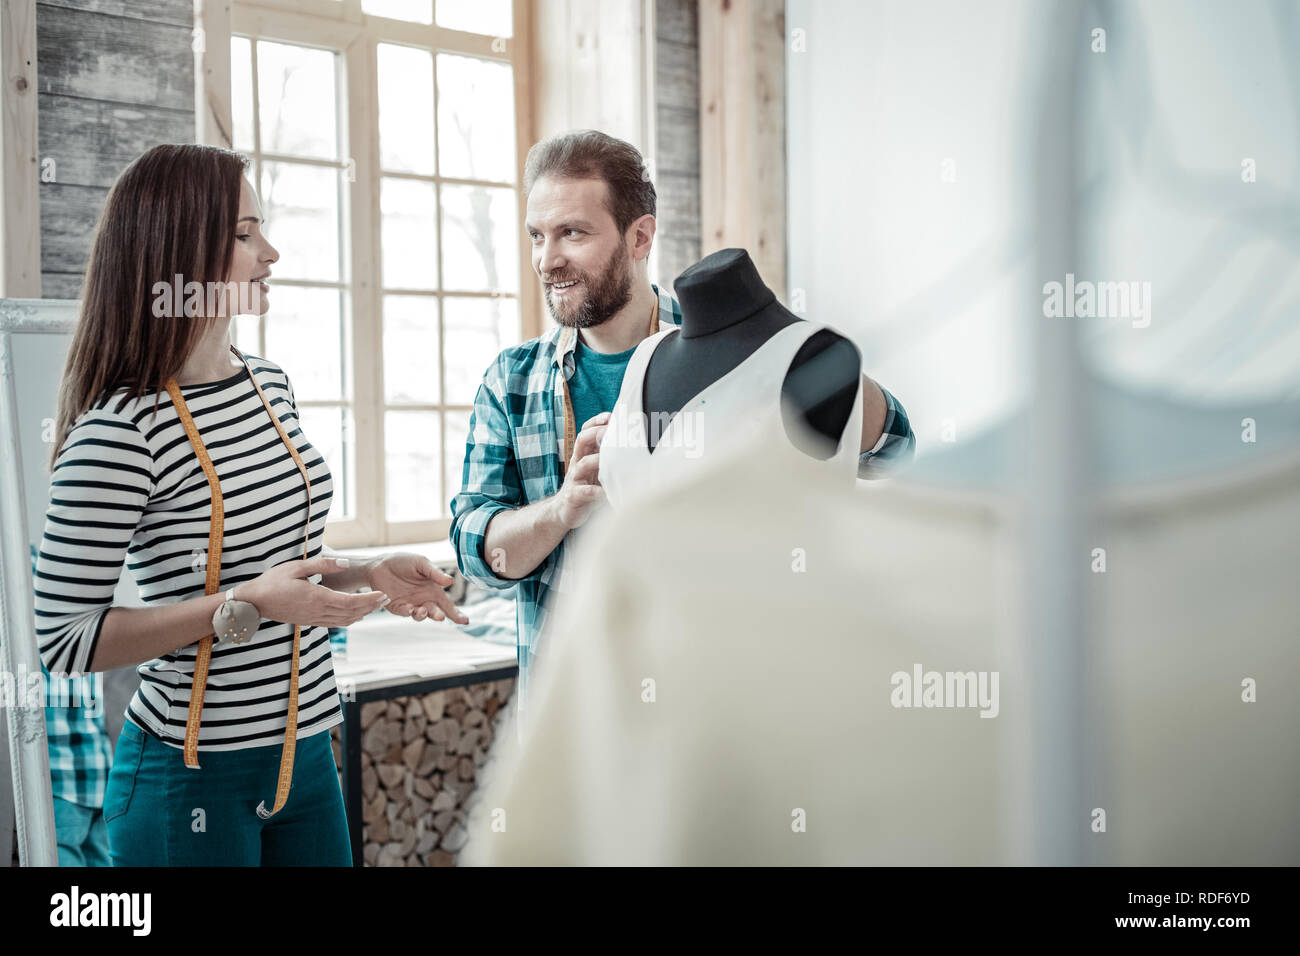 Dark-haired wife designing clothes with her husband - Stock Image